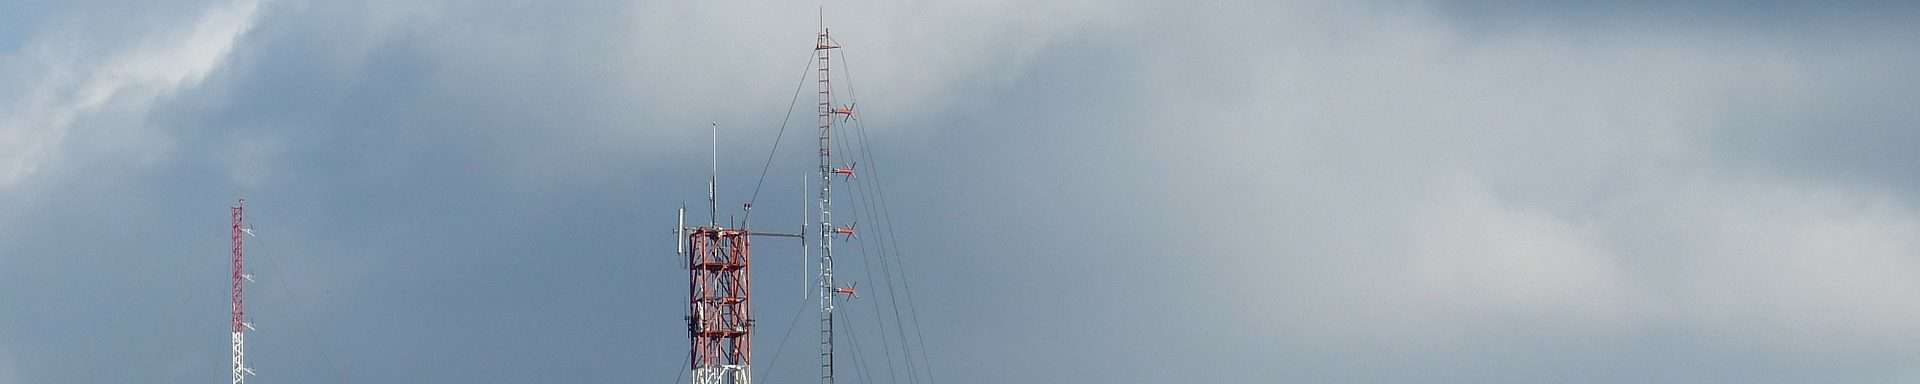 cropped antenna 227799 1920 1